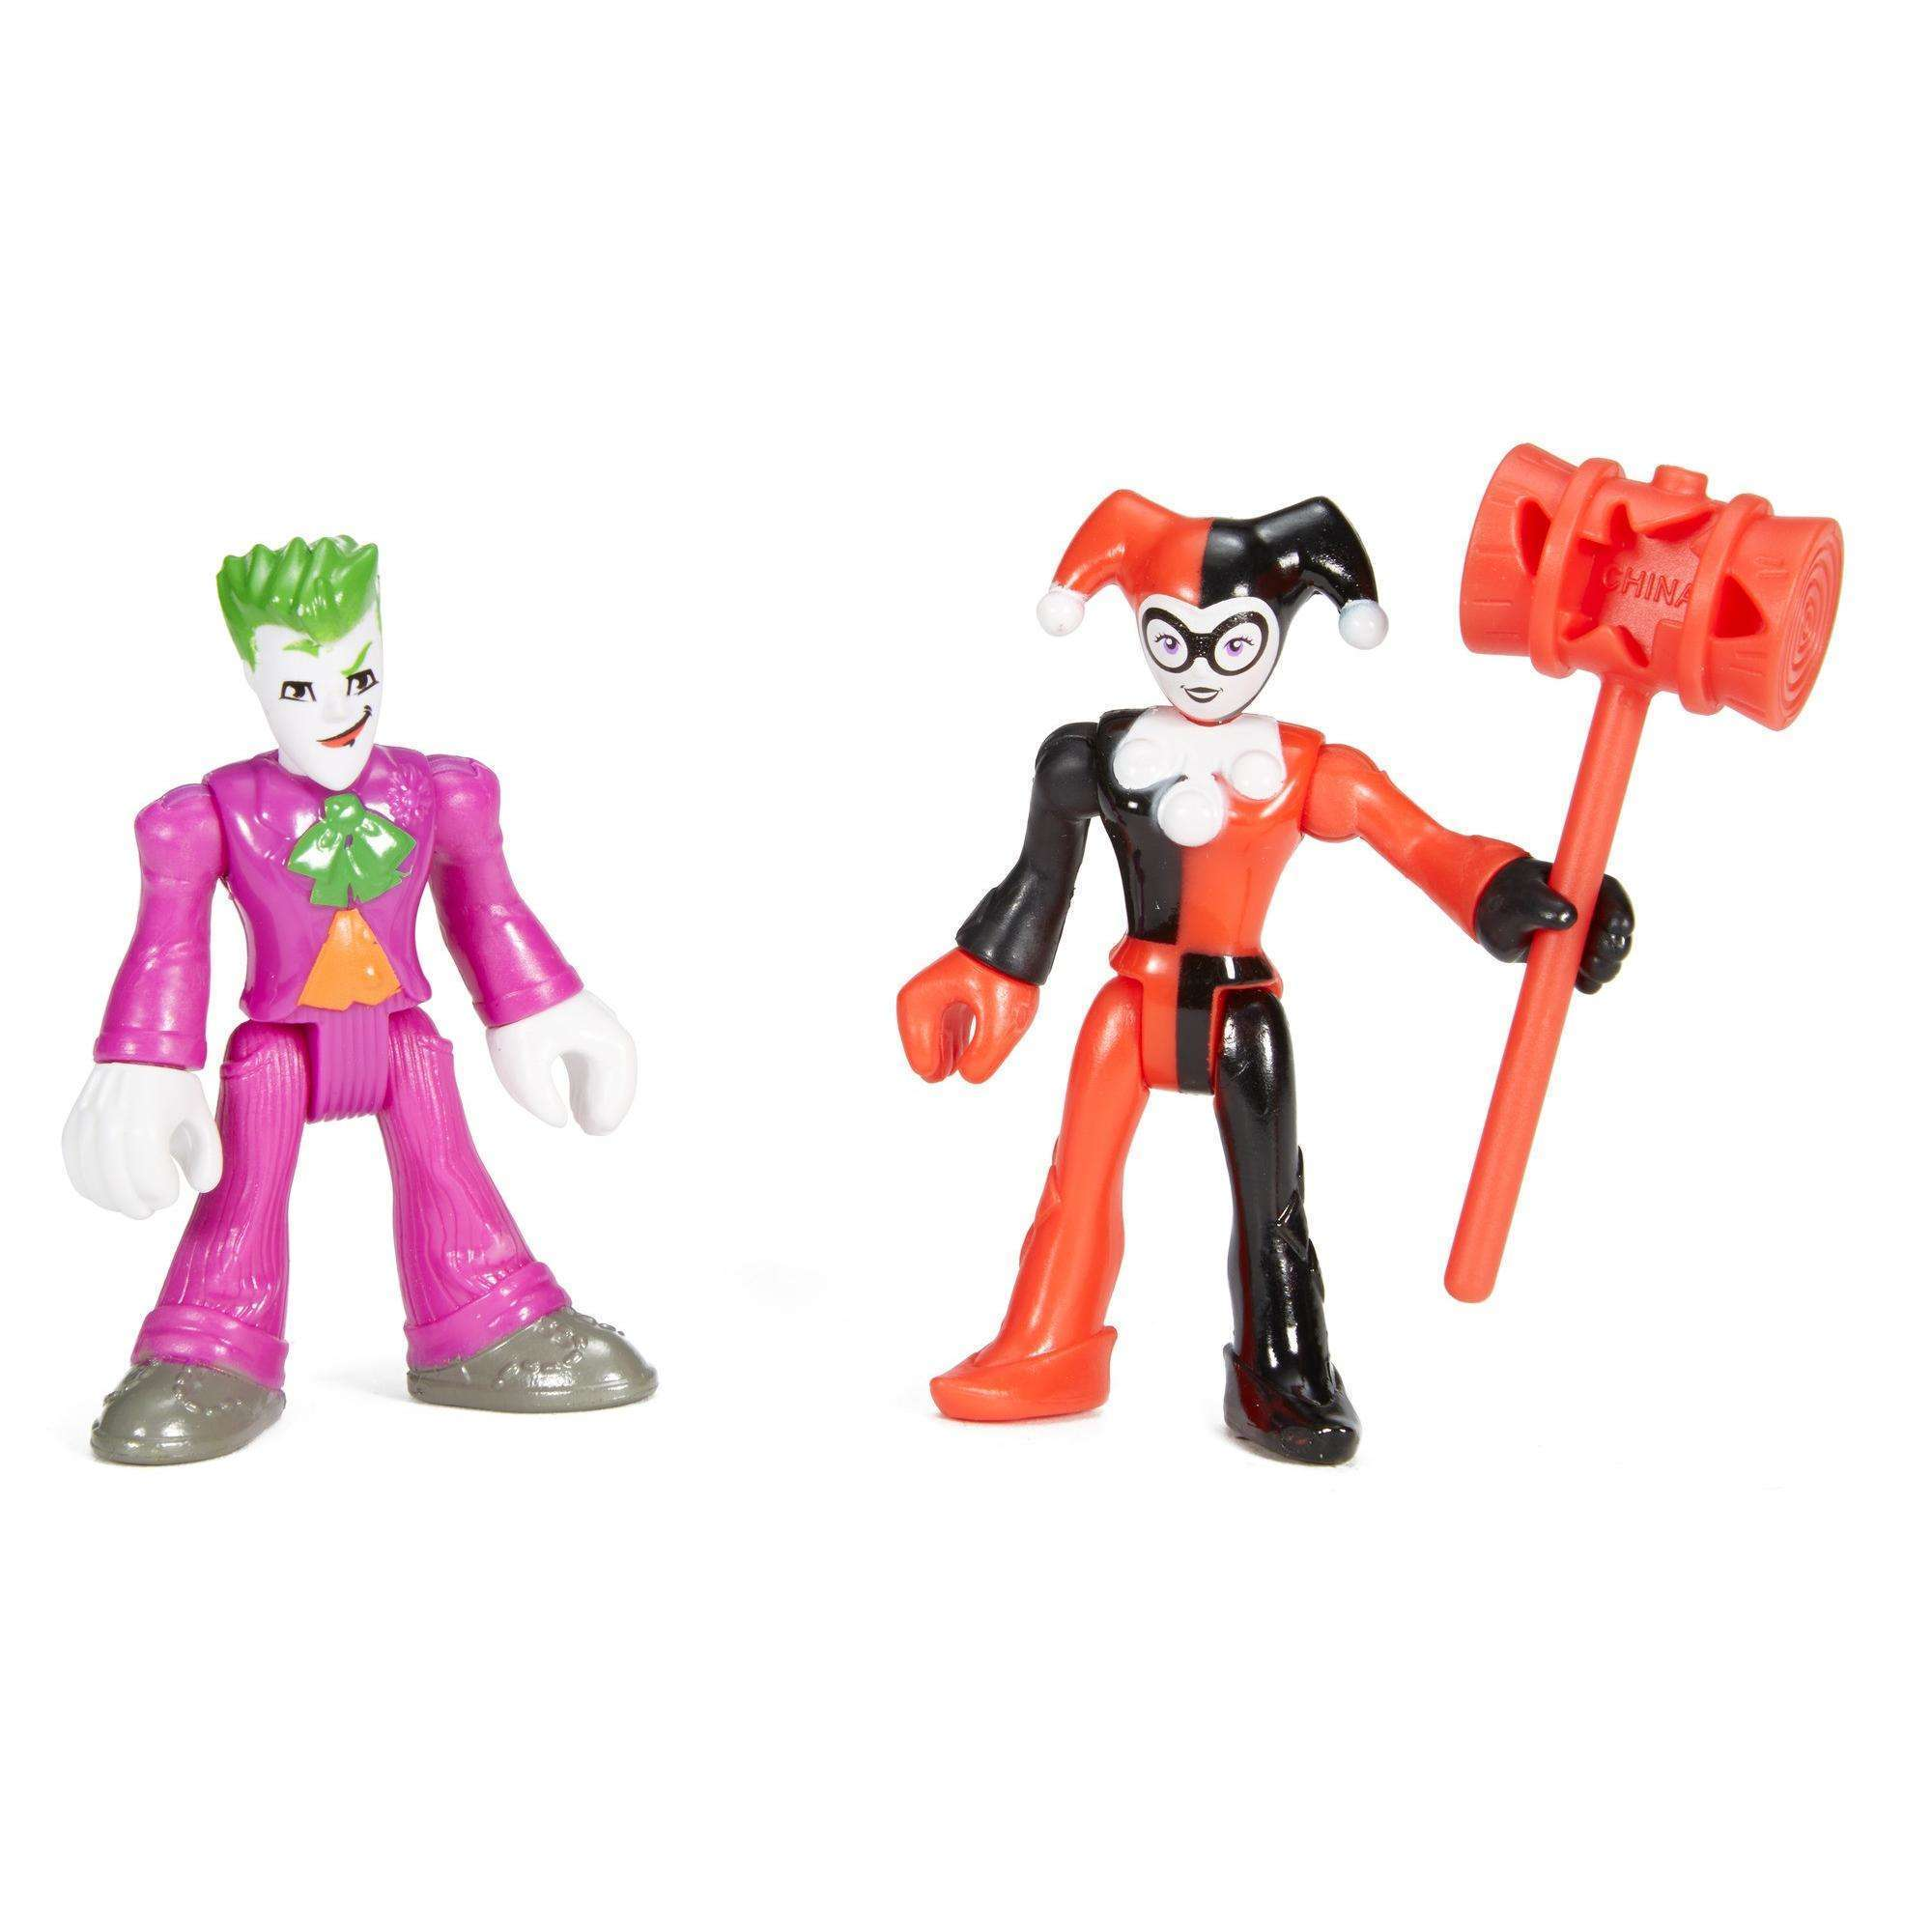 IMaginext DC Super Friends the Joker and Harley Quinn Action Figures by FISHER PRICE